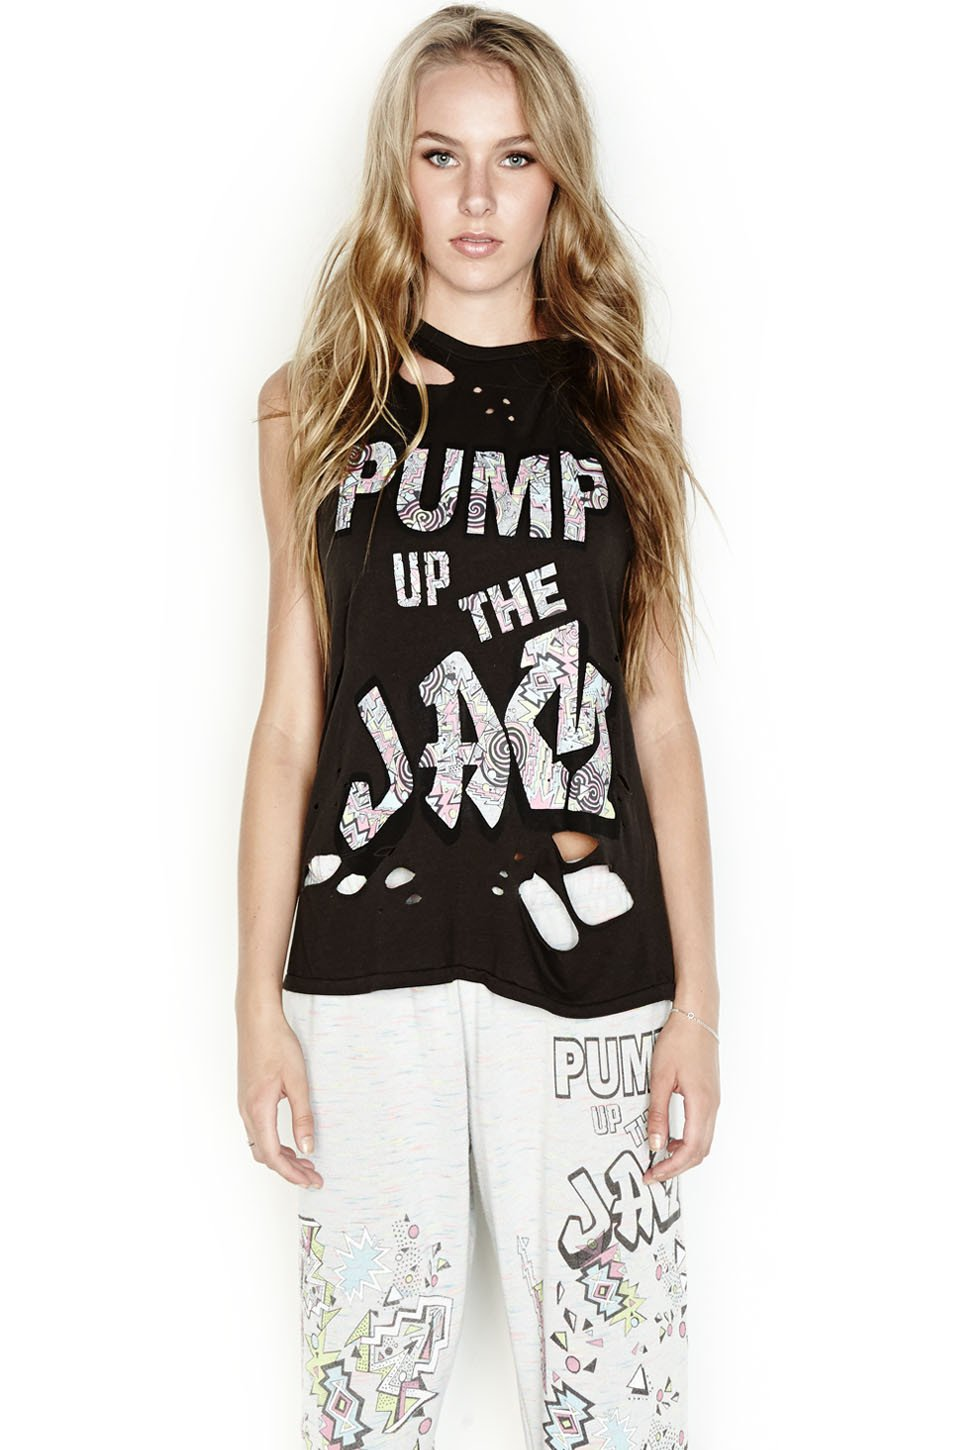 995c00539bb8 Roxanne Pump Up The Jam Vintage Muscle Tee | Products | Muscle tees ...